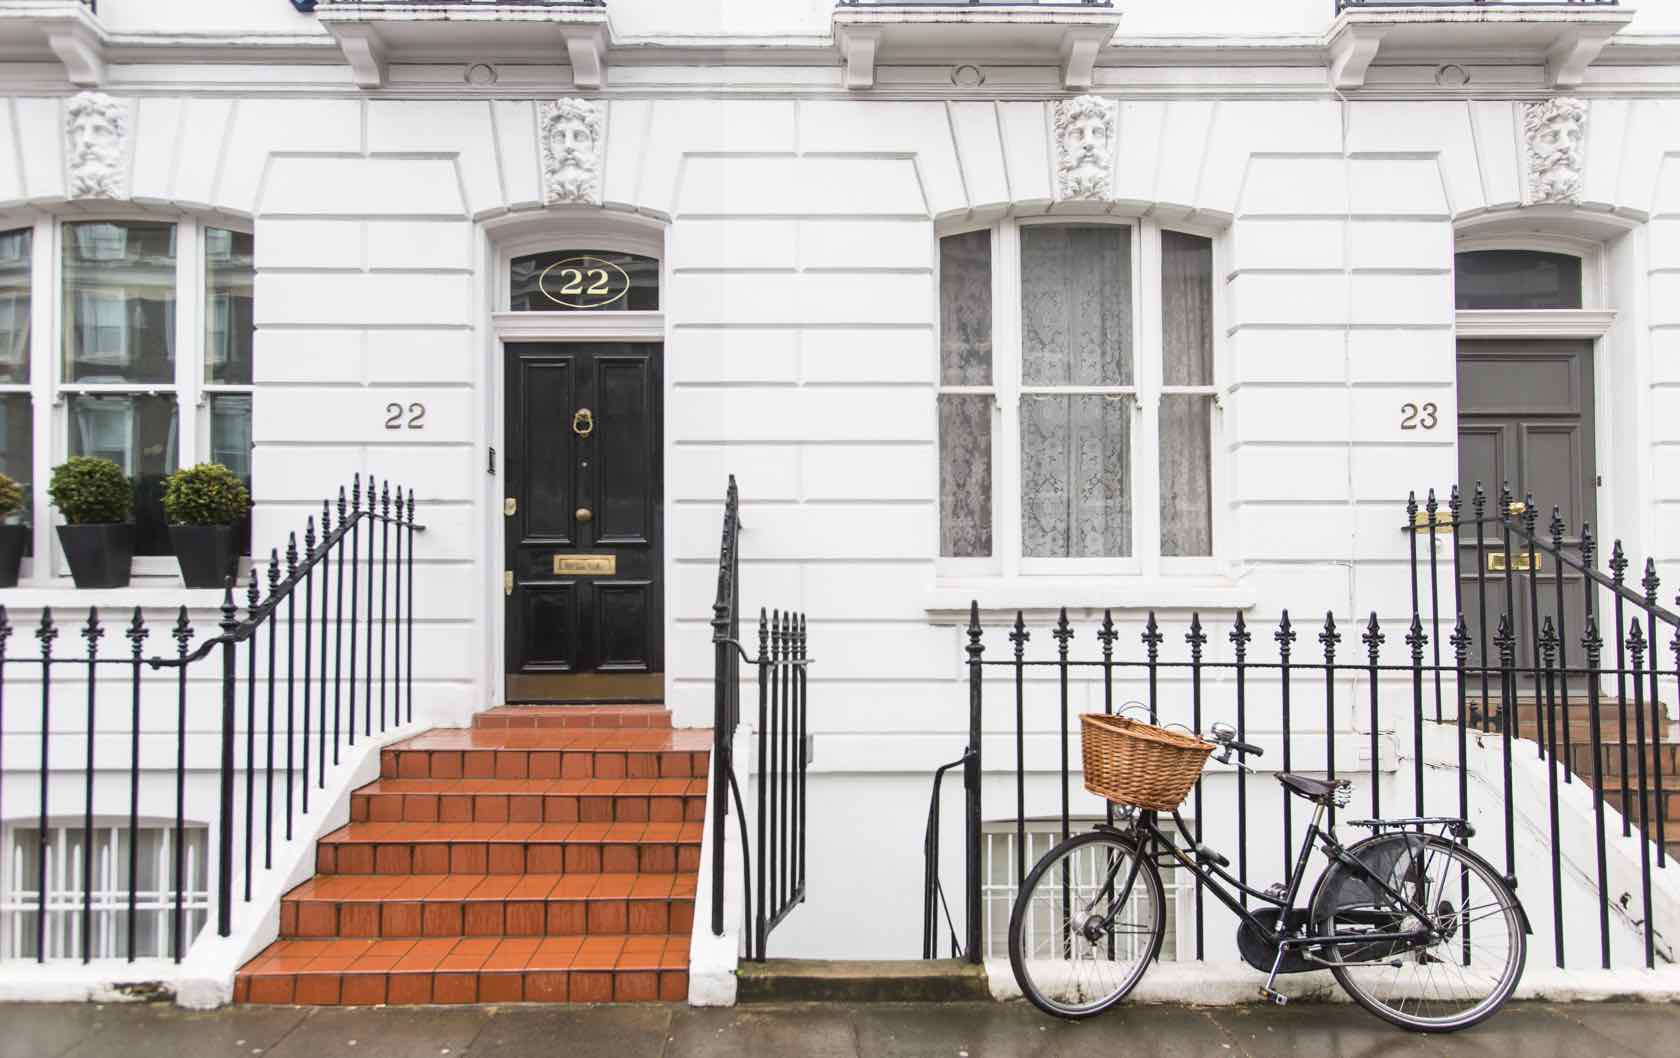 The Kensington Guide For Kings: Live Like Royalty In London's Most Regal Neighborhood